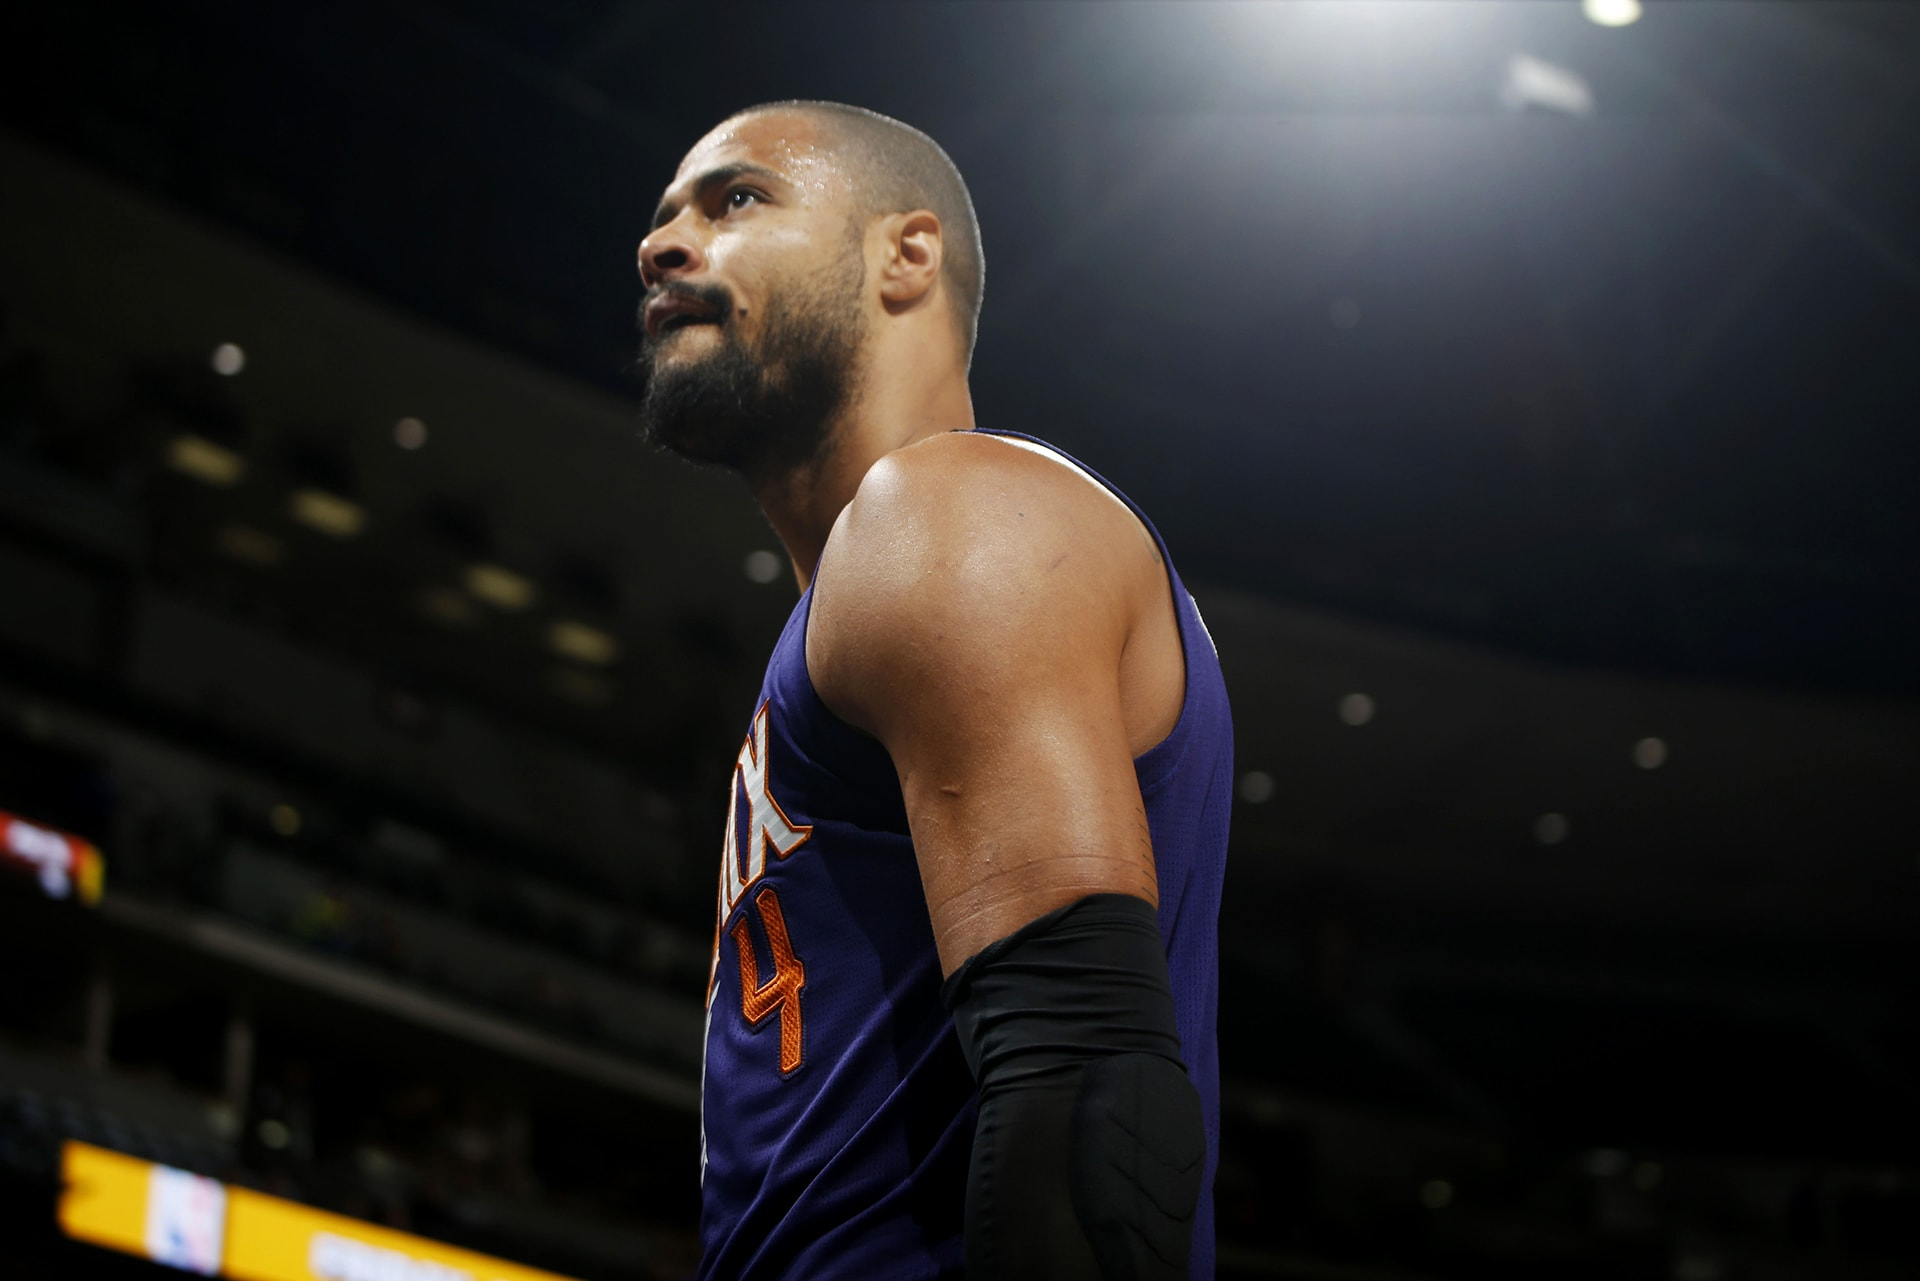 Phoenix Suns center Tyson Chandler walks off the court after being ejected for arguing with referees while facing the Denver Nuggets in the second half of an NBA basketball game Friday, Oct. 16, 2015, in Denver. The Nuggets won 106-81. (AP Photo/David Zalubowski)